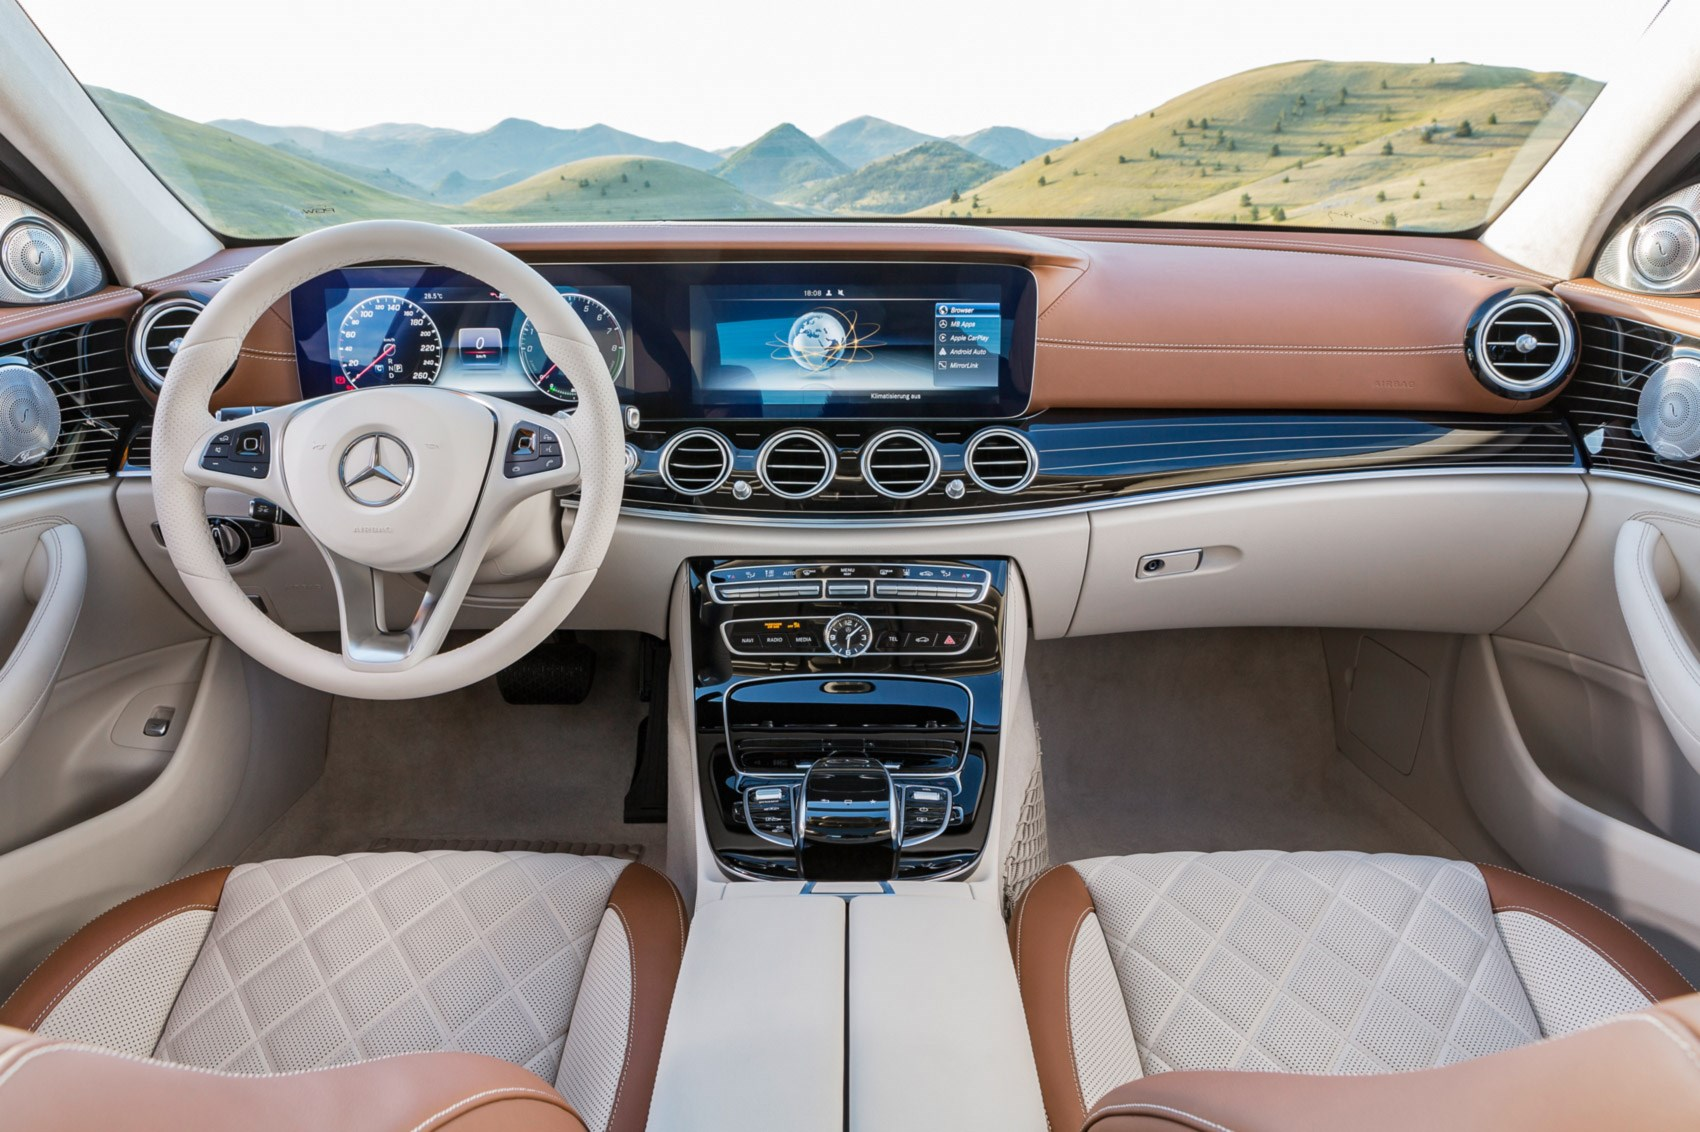 Mercedes-Benz E-Class: Transmission position and drive program display